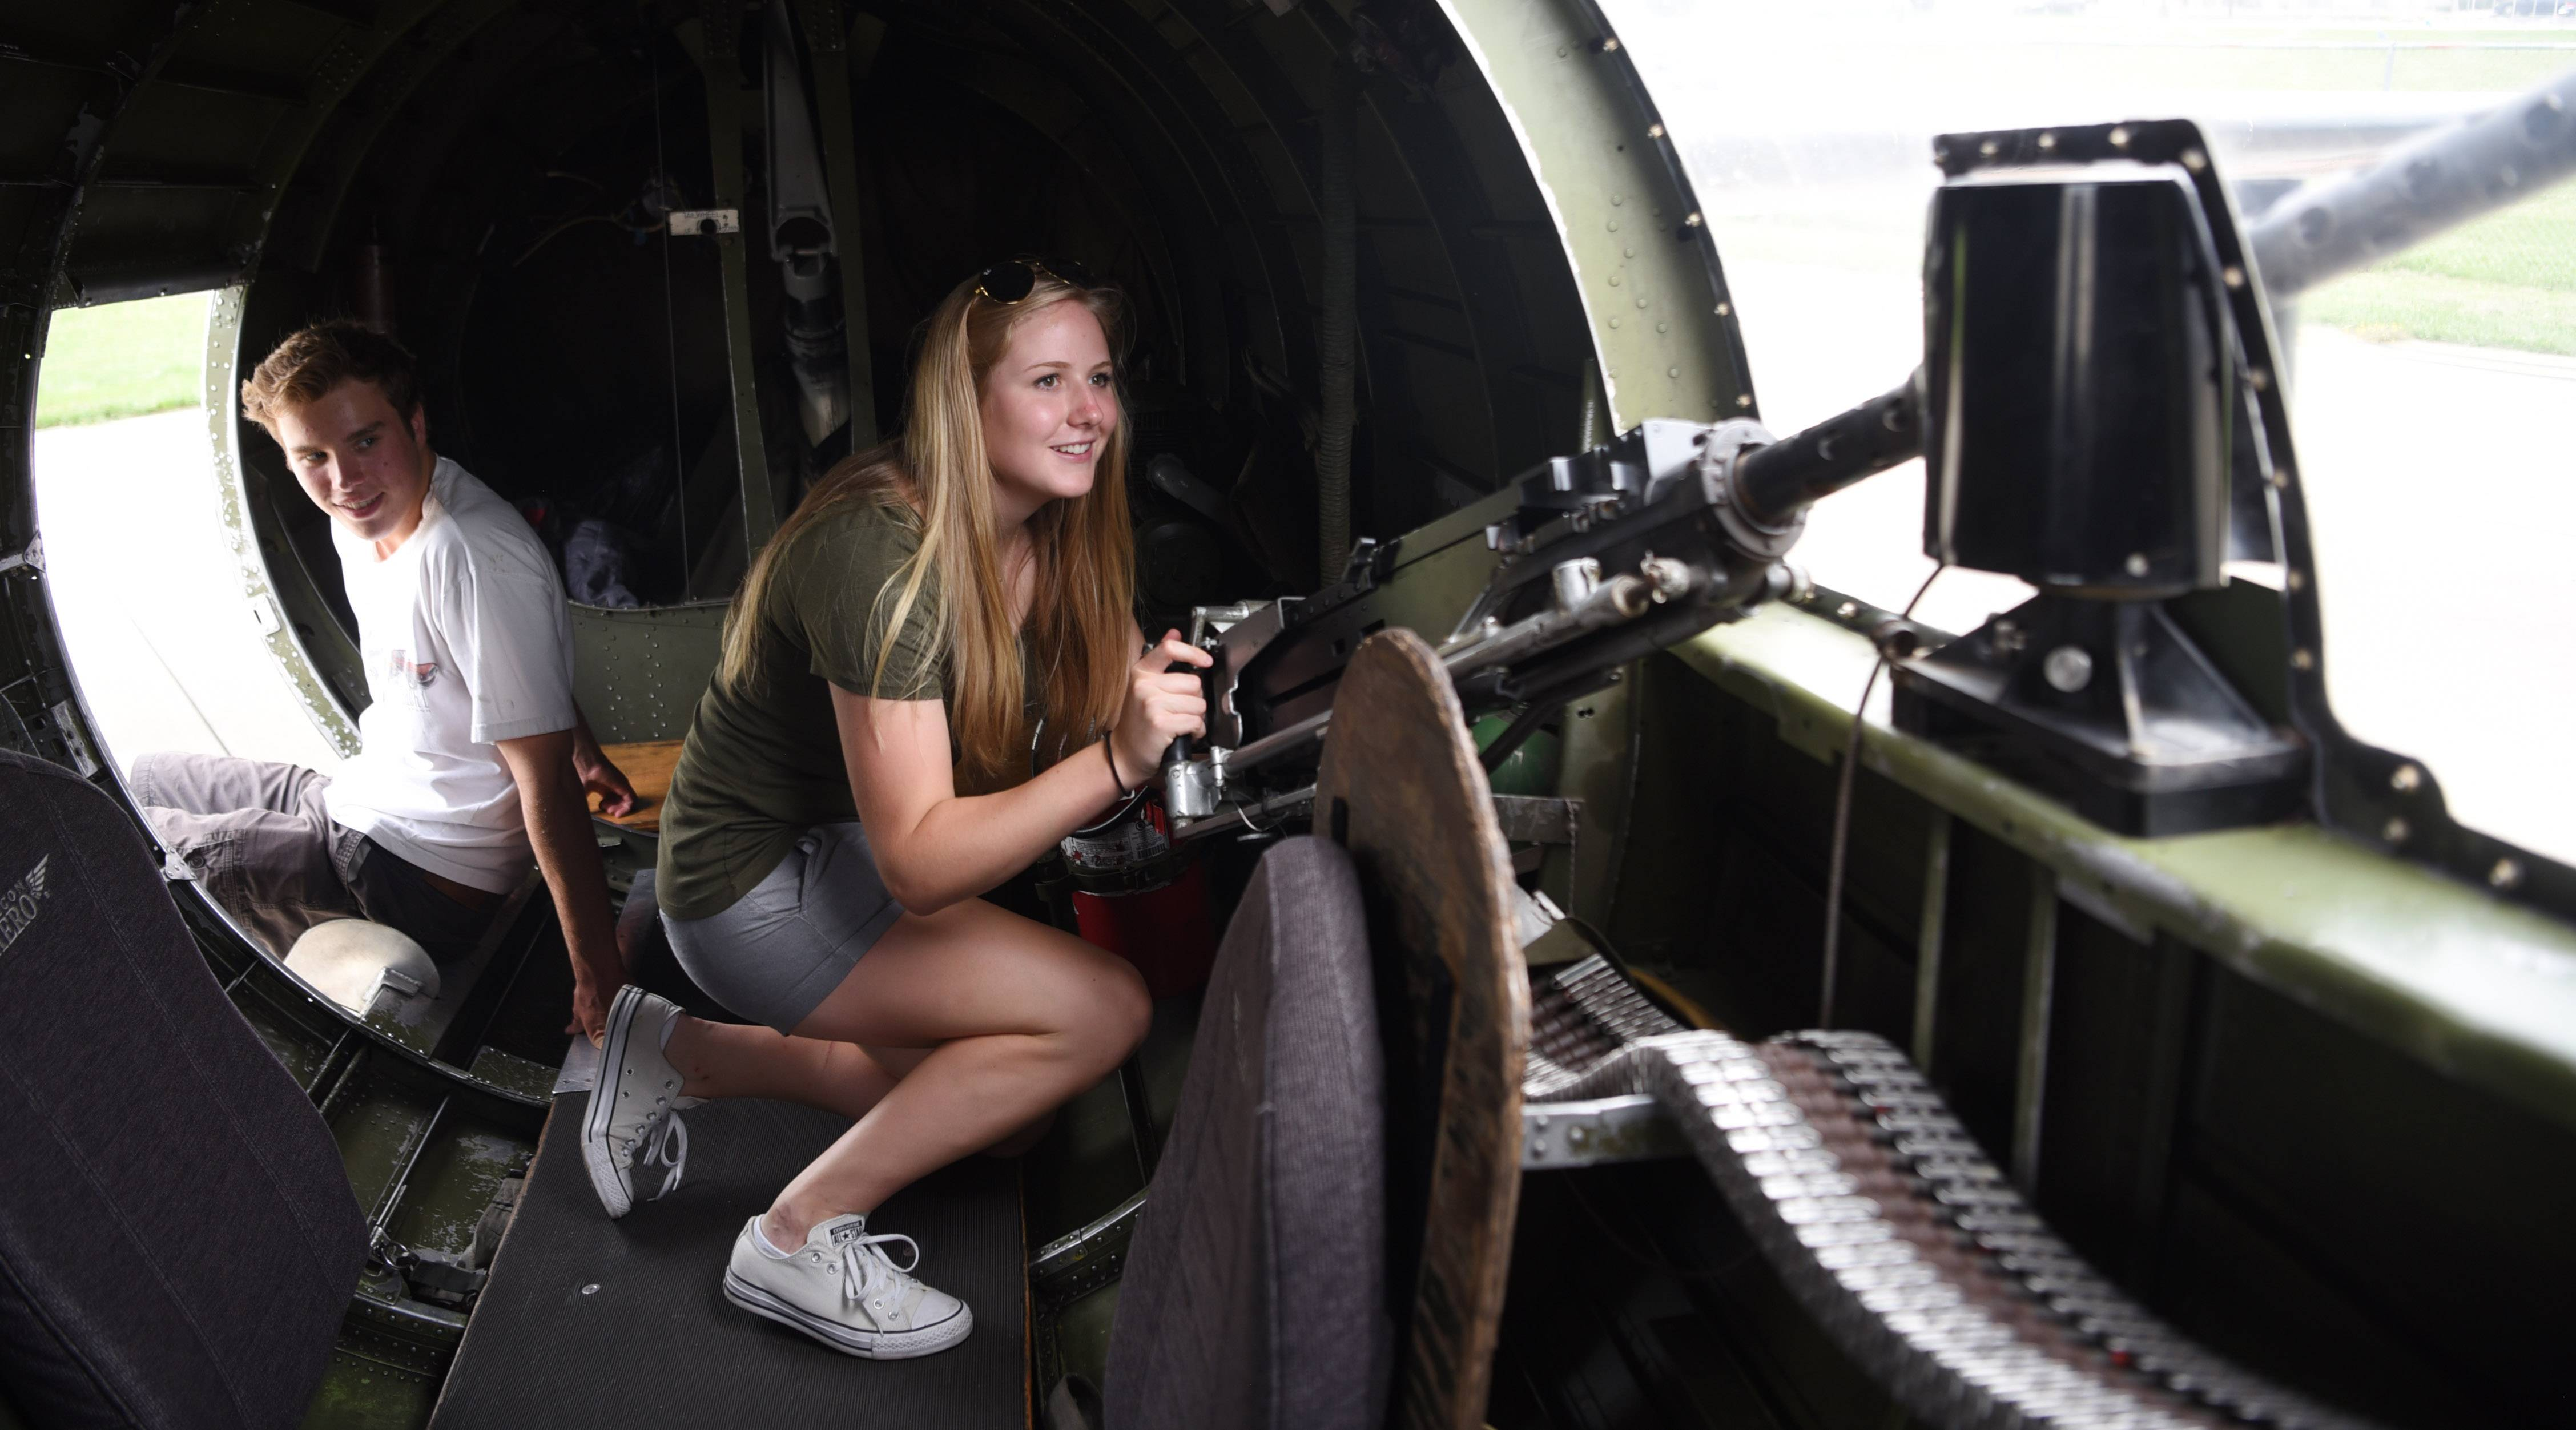 Layne Lindroth, right, and Owen Risop, both of Barrington, view the interior of a B-17 Flying Fortress, a World War II-era bomber, during the Wings of Freedom tour at Chicago Executive Airport in Wheeling Wednesday.